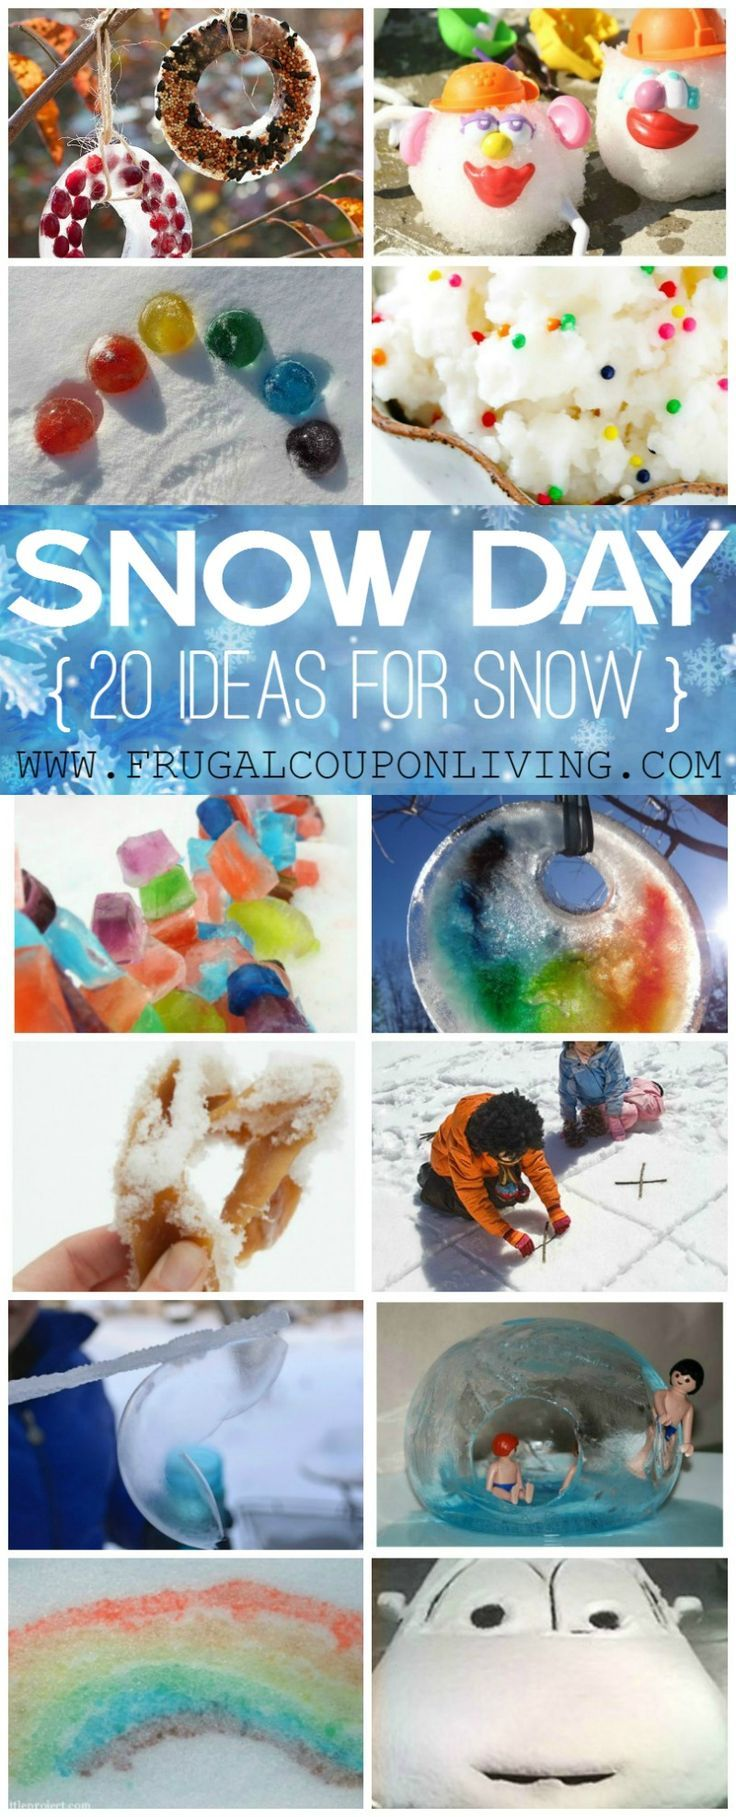 20 Ways to Enjoy the Snow in these Snow Day Ideas on Frugal Coupon Living. Kids Winter Activities. Kids Outdoor Activities.